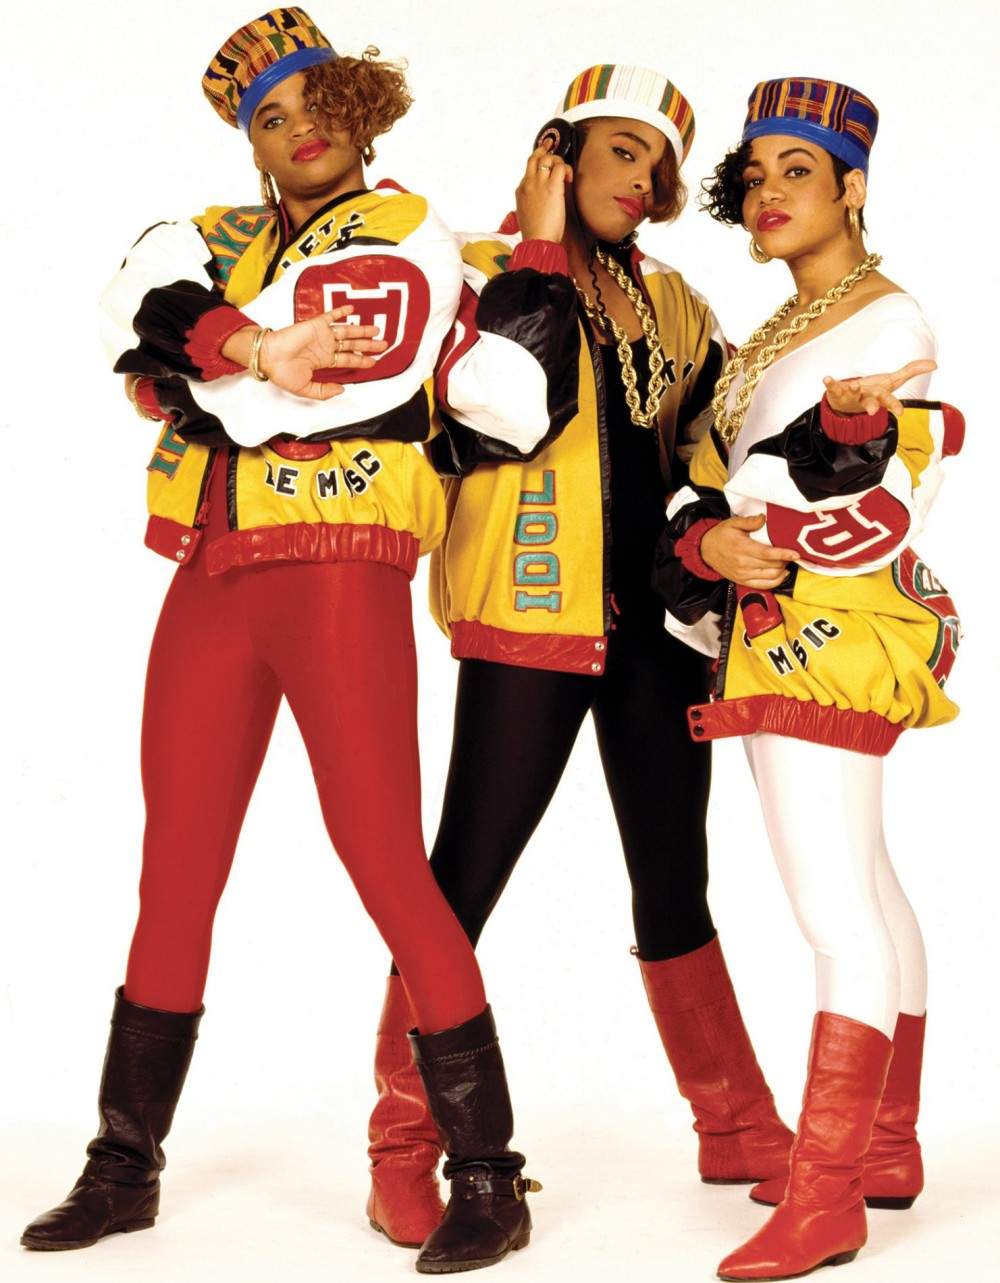 6. Salt-N-Pepa, from the cover shoot for Shake Your Thang (1987). Photo by Janette Beckman..jpg